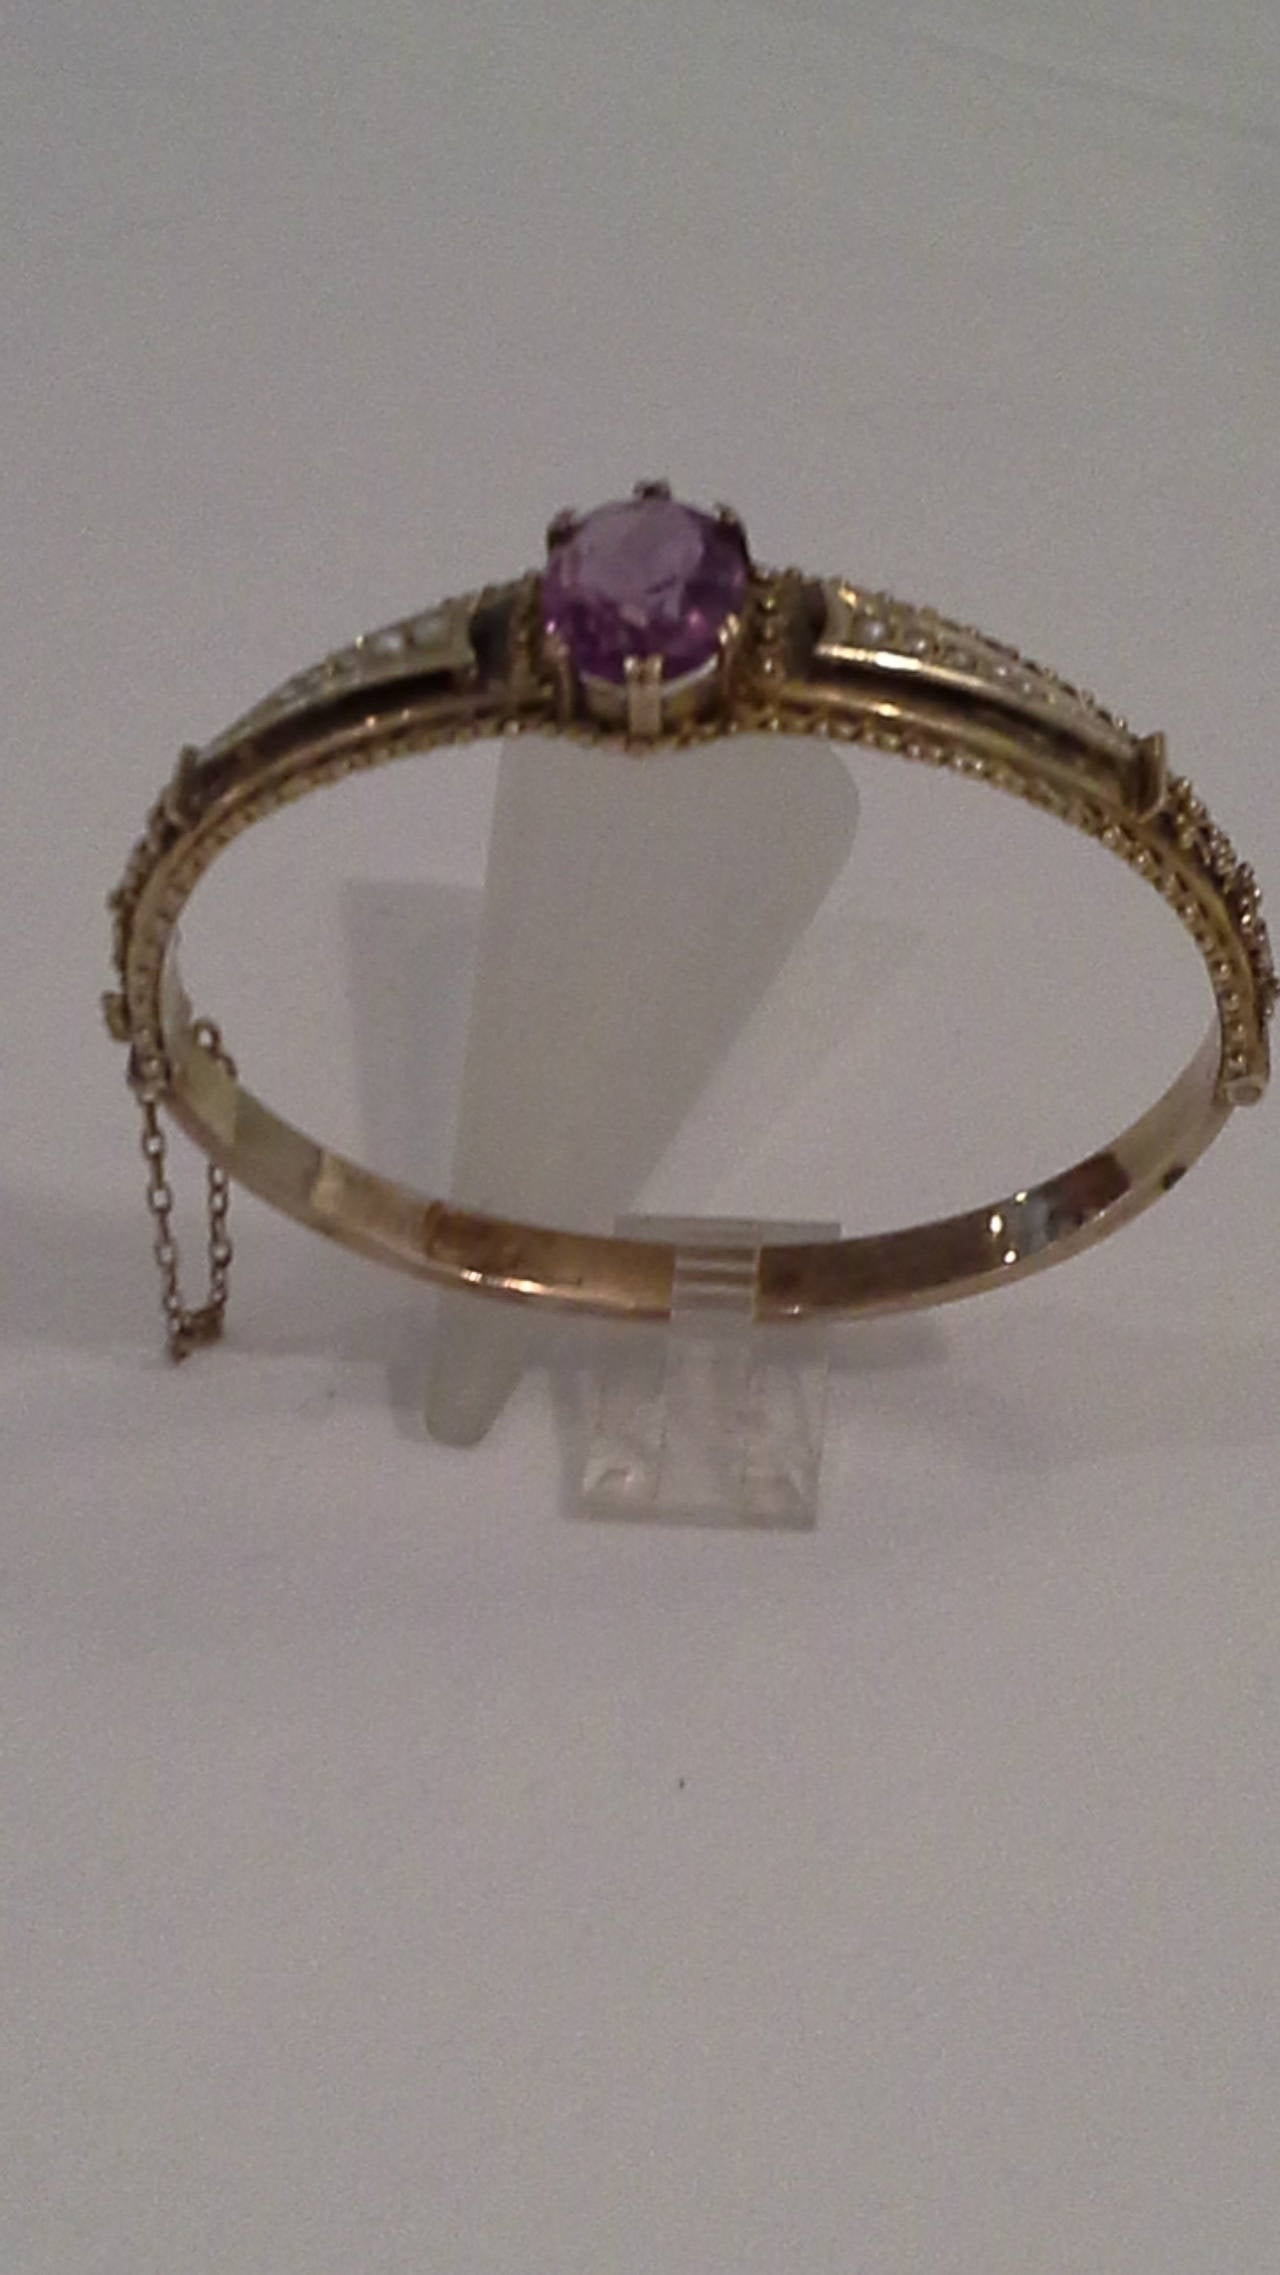 Victorian Amethyst and Seed Pearl Bangle or Bracelet, 9k Gold, Stamped .375, The bracelet has a faceted Amethyst center stone with five graduated seed pearls on either side, gold bead accents on both sides, with floral beads and has a safety chain.